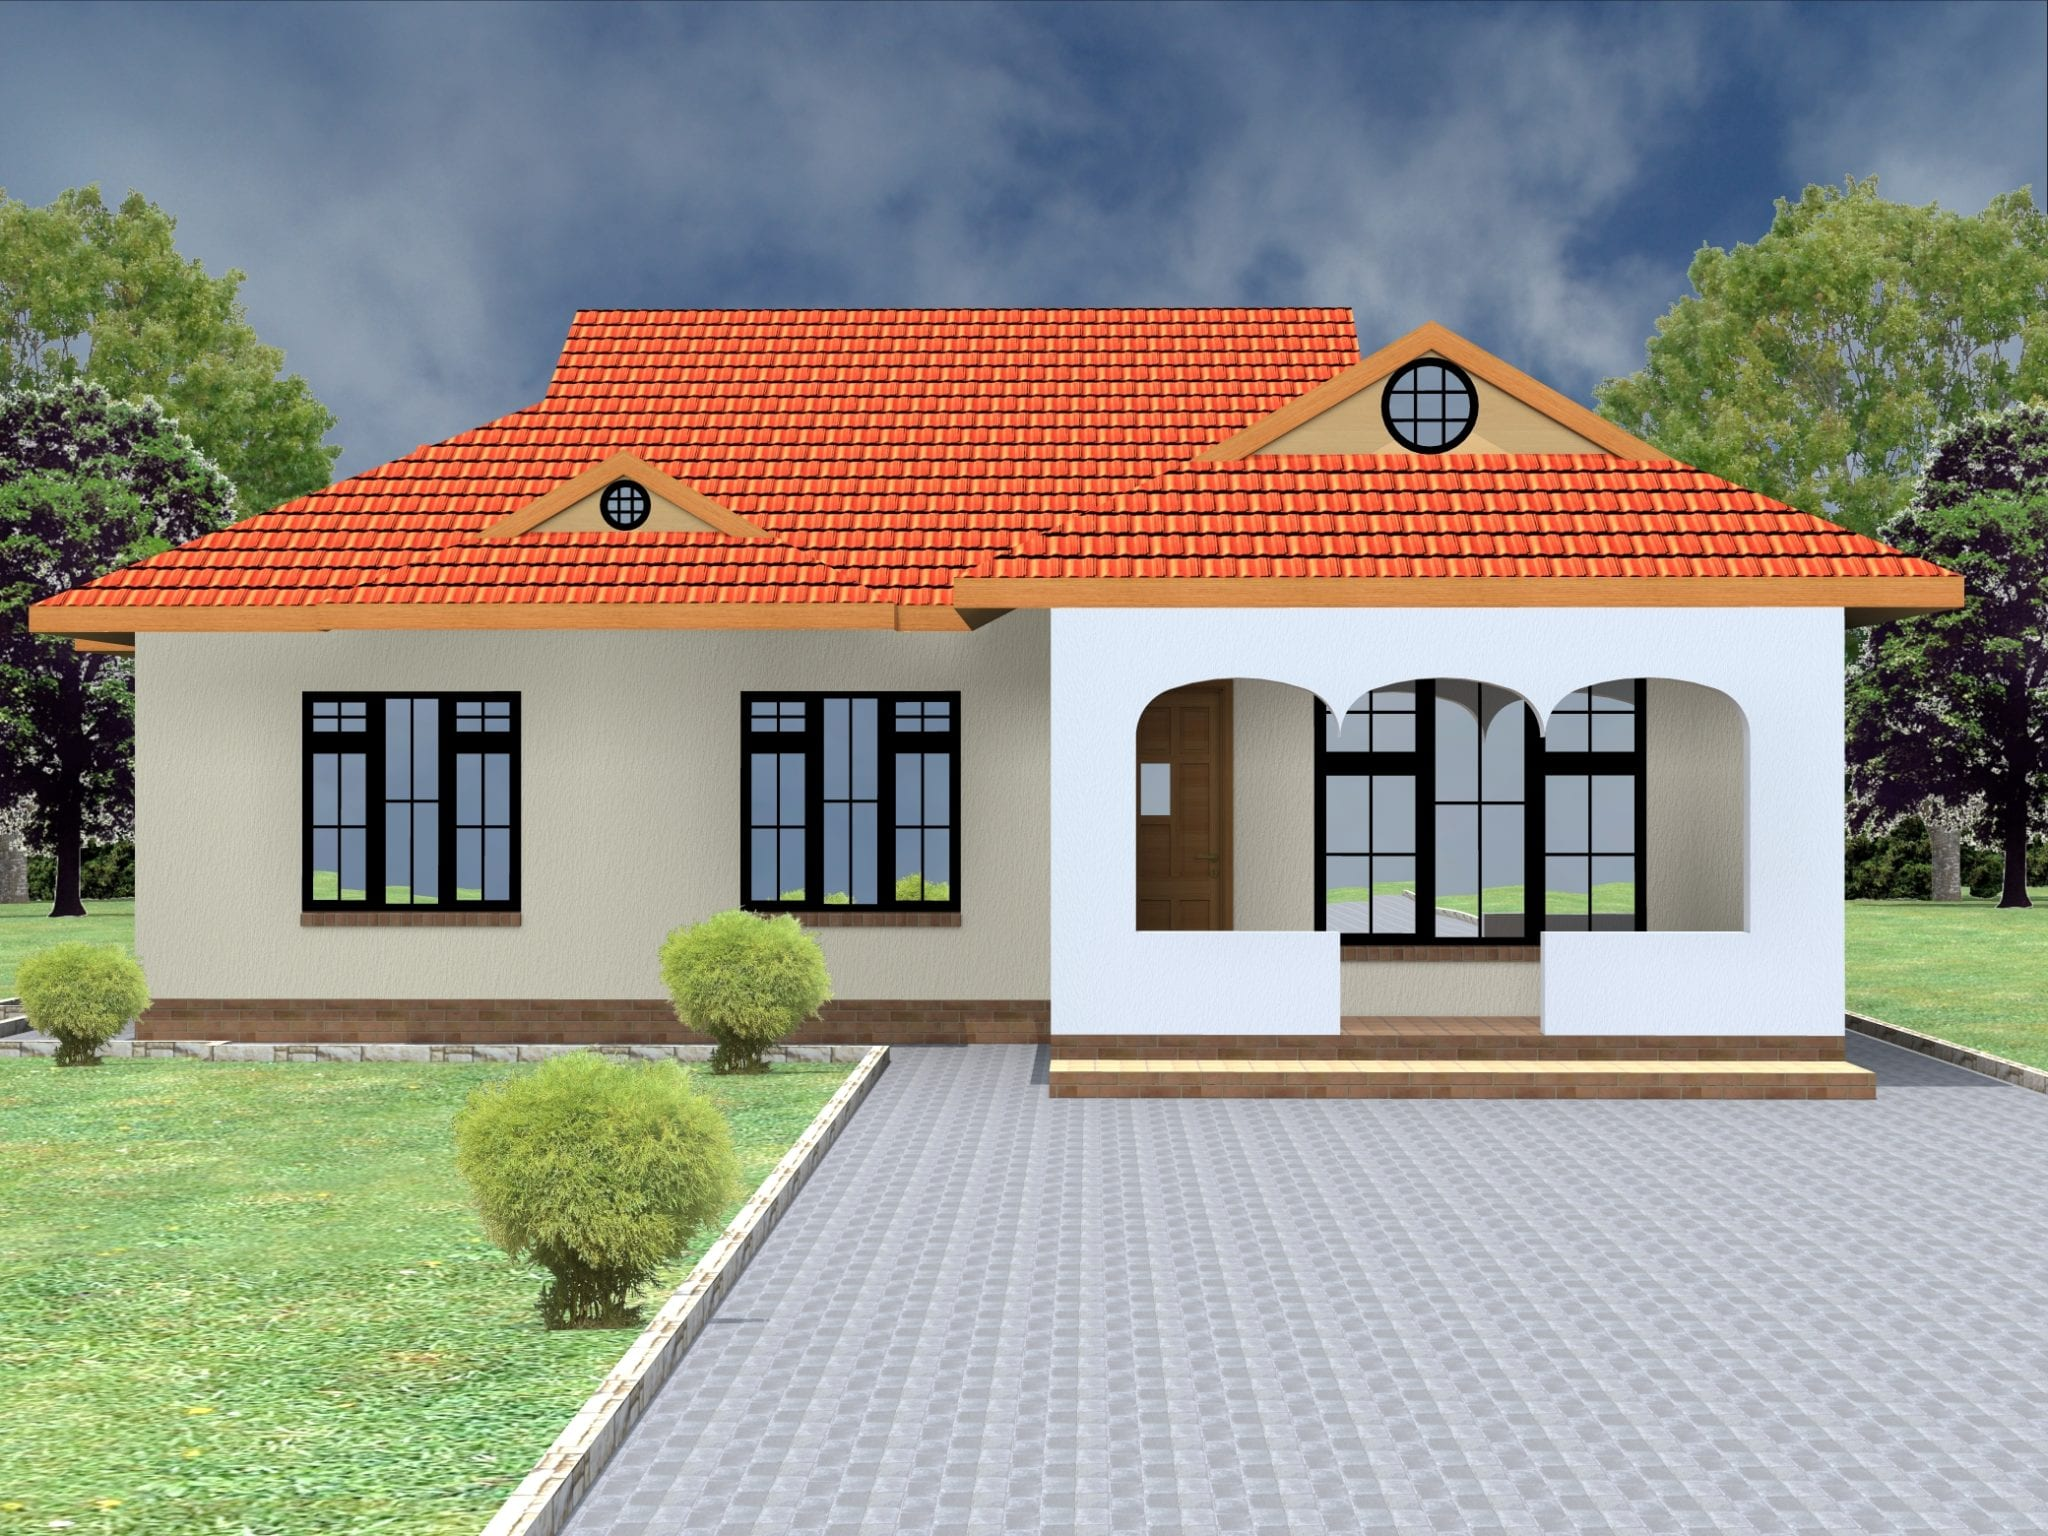 Beautiful house designs kenya |HPD Consult